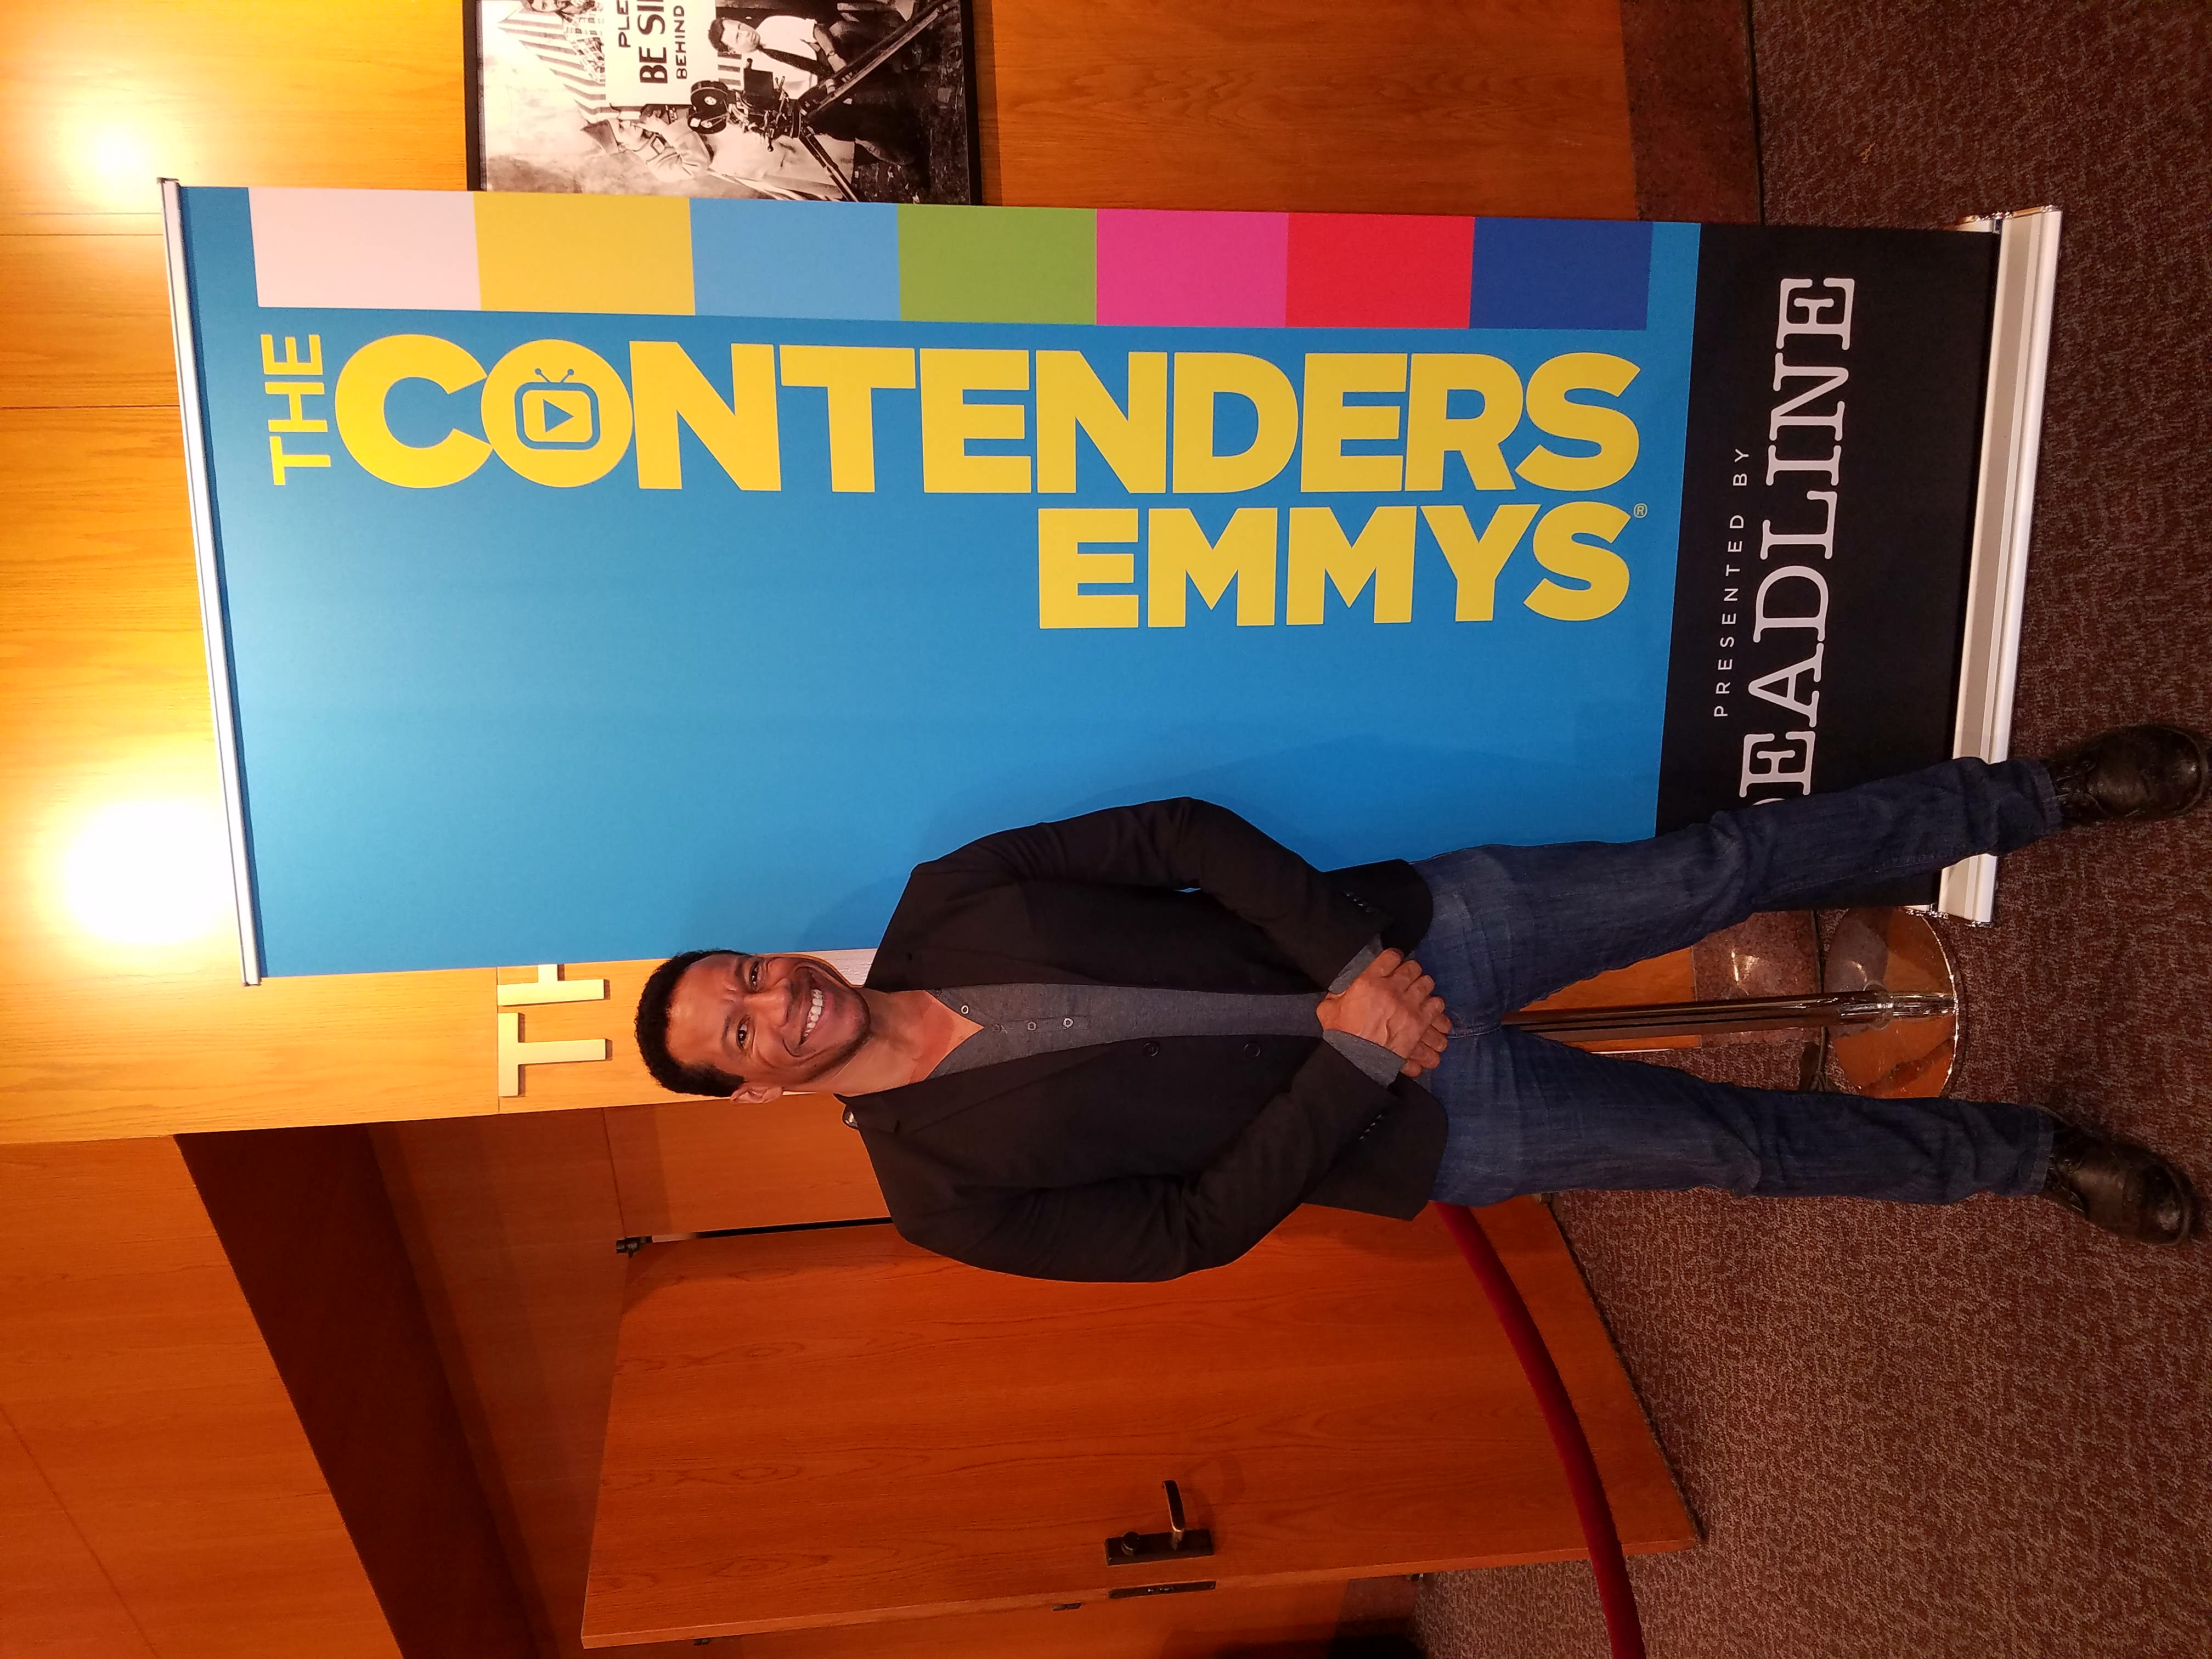 The Contenders Emmys